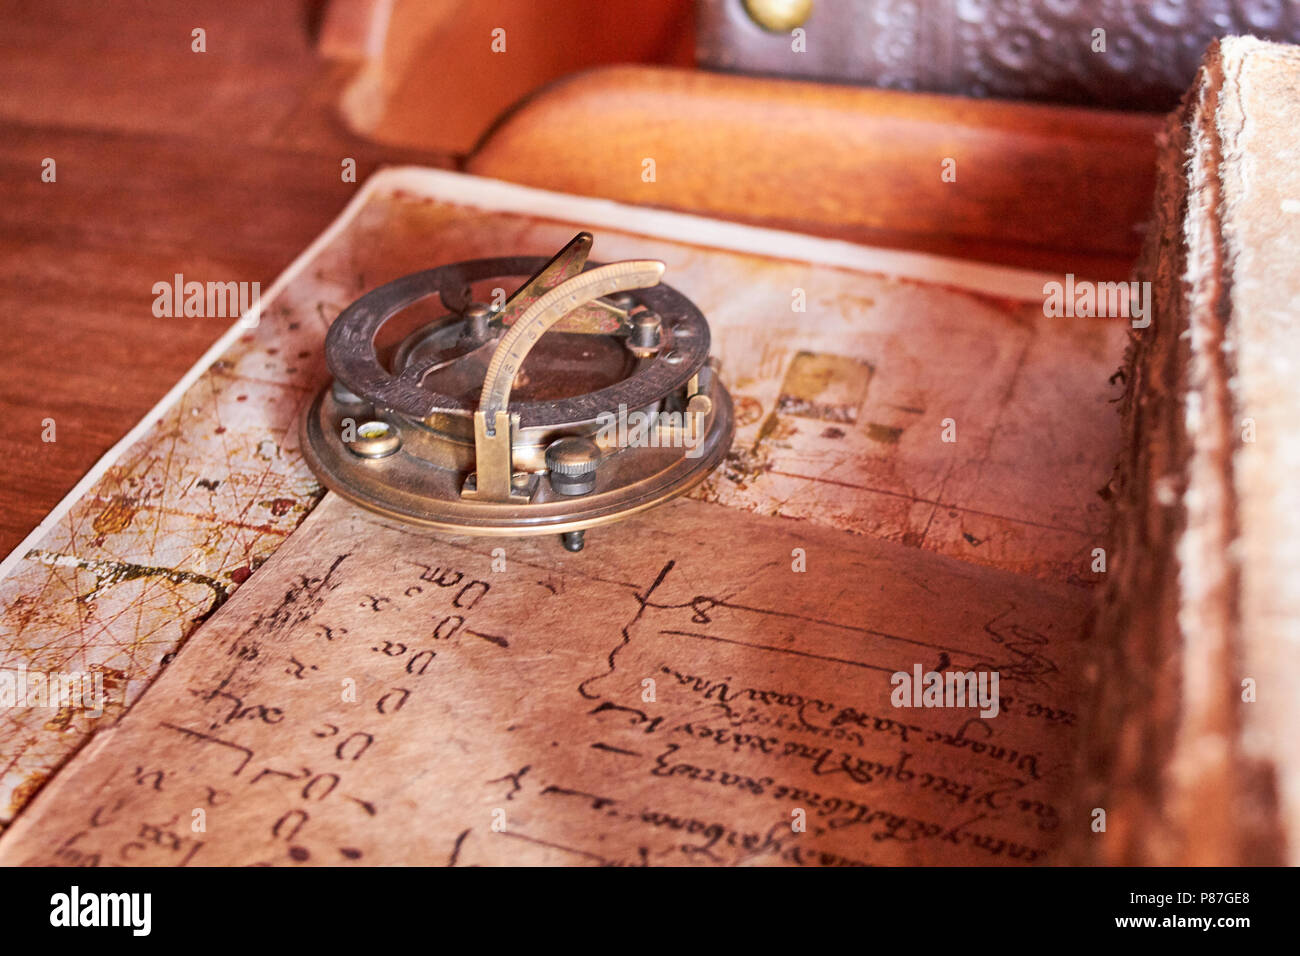 Old sailboat desk with and old book with aged paper - Stock Image